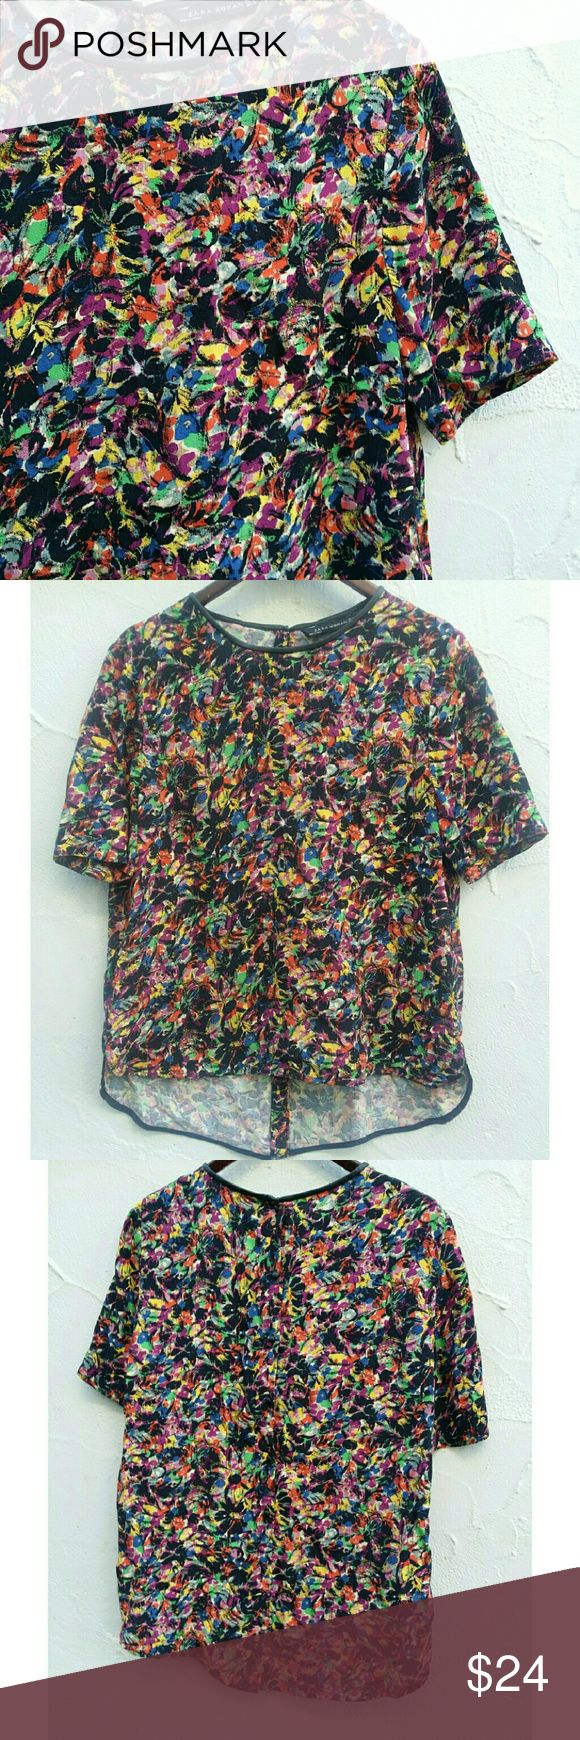 Zara Multi color Floral blouse Leather Collar L Very cute floral blose. Black faux leather collar. Full Button down back. No flaws Zara Tops Blouses